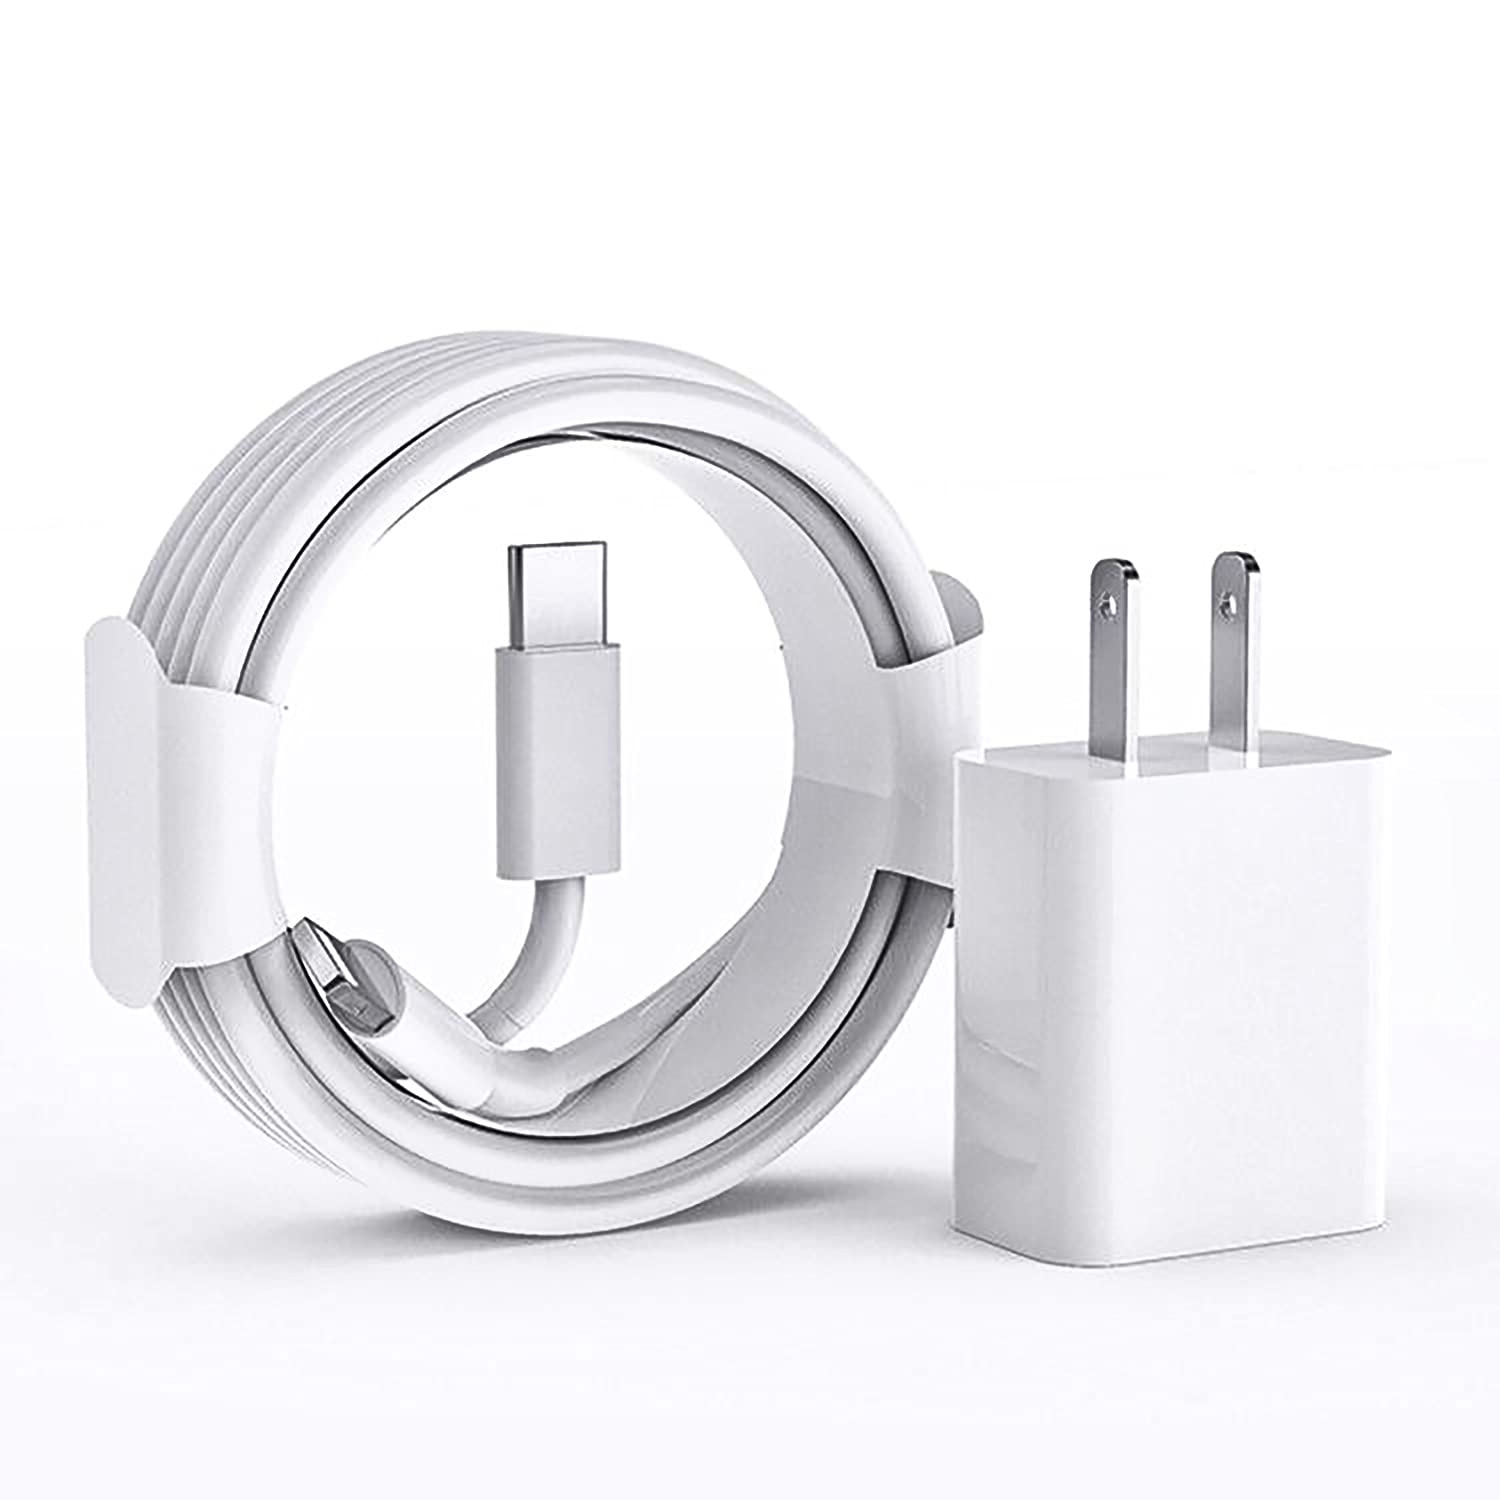 Long USB C Charger, 10FT iPhone 12 Charger, [Apple MFi Certified] USB C Fast Charger 20W PD Type C Wall Plug Adapter with 10FOOT Lightning Cable for iPhone 12/12 Mini/Pro/Pro Max/11/Xs Max/XR/X/iPad